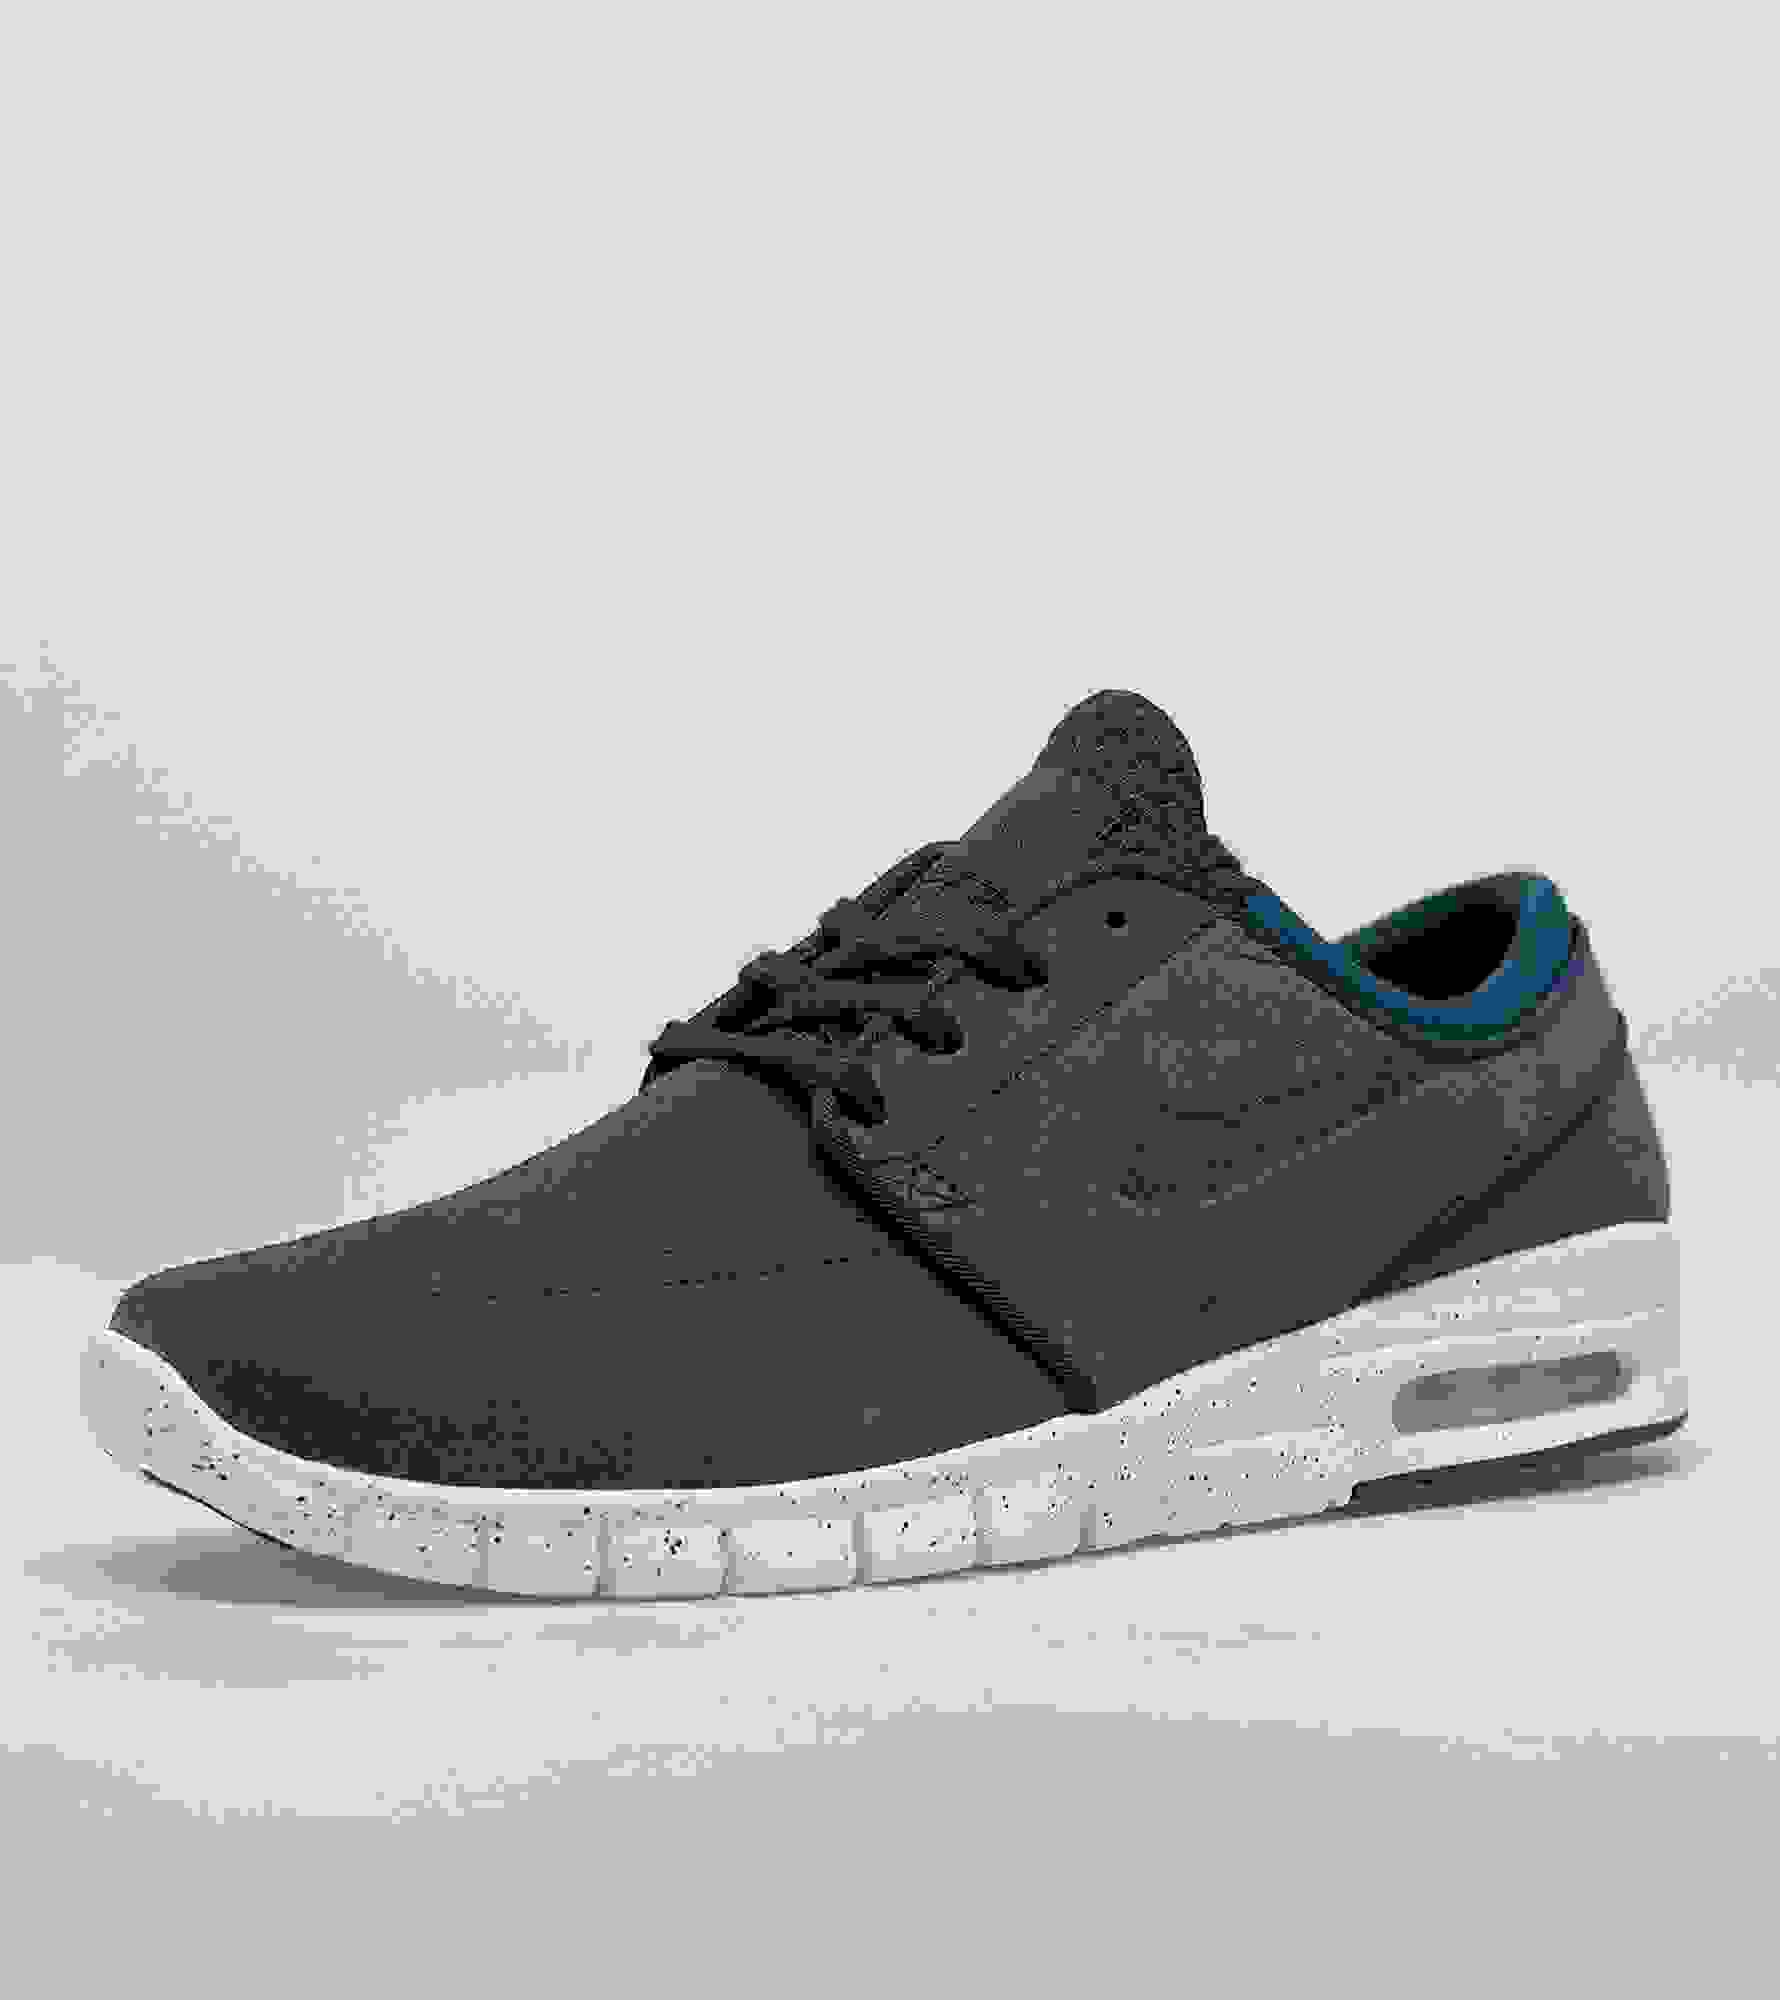 f7b126a4ba ... gpx black grey camo 12213253 2017 24ab2 36f94  where to buy janoski max  size 4 find great deals on online for nike roshe run